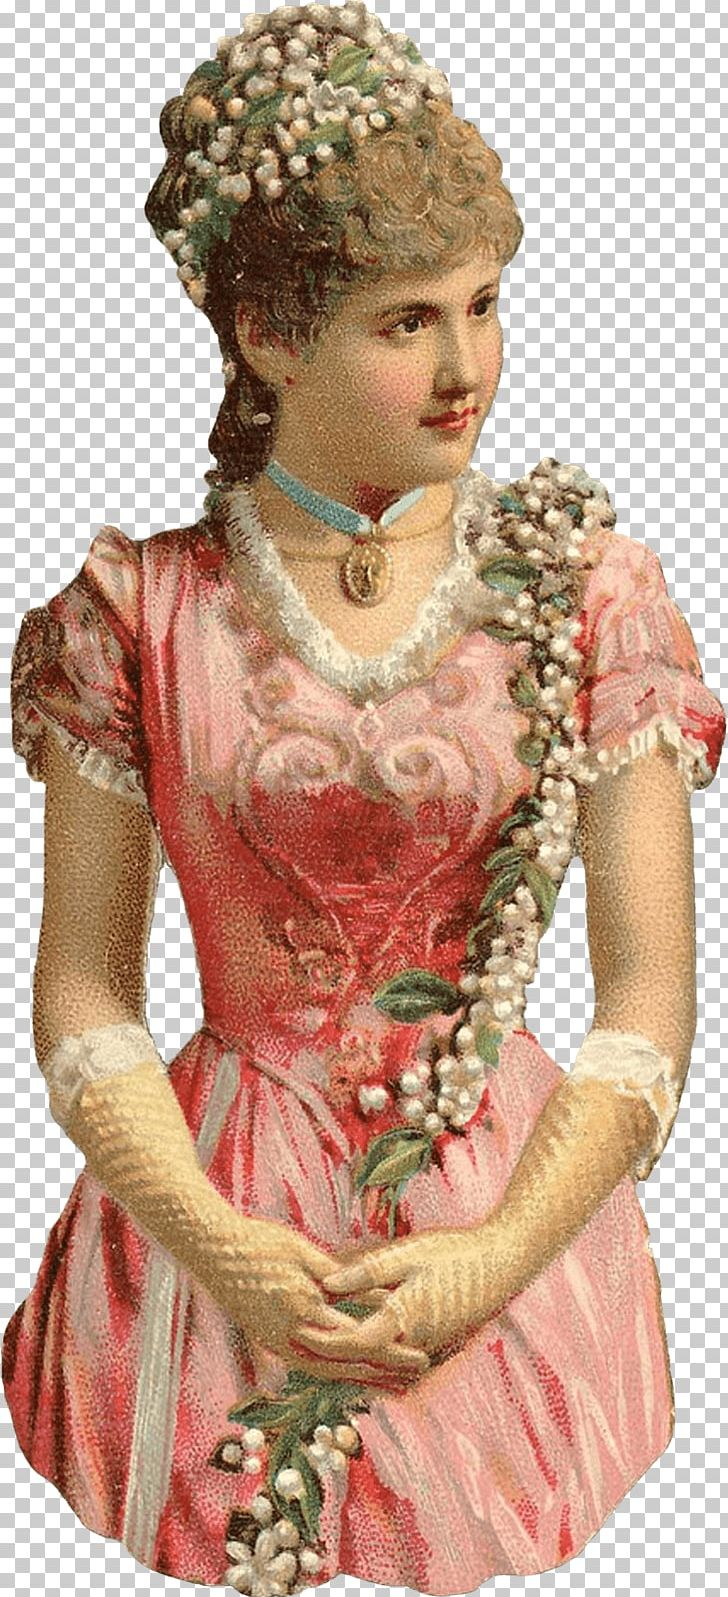 Women victorian glove clipart svg royalty free library Vintage Victorian Lady With Long Gloves PNG, Clipart, People ... svg royalty free library